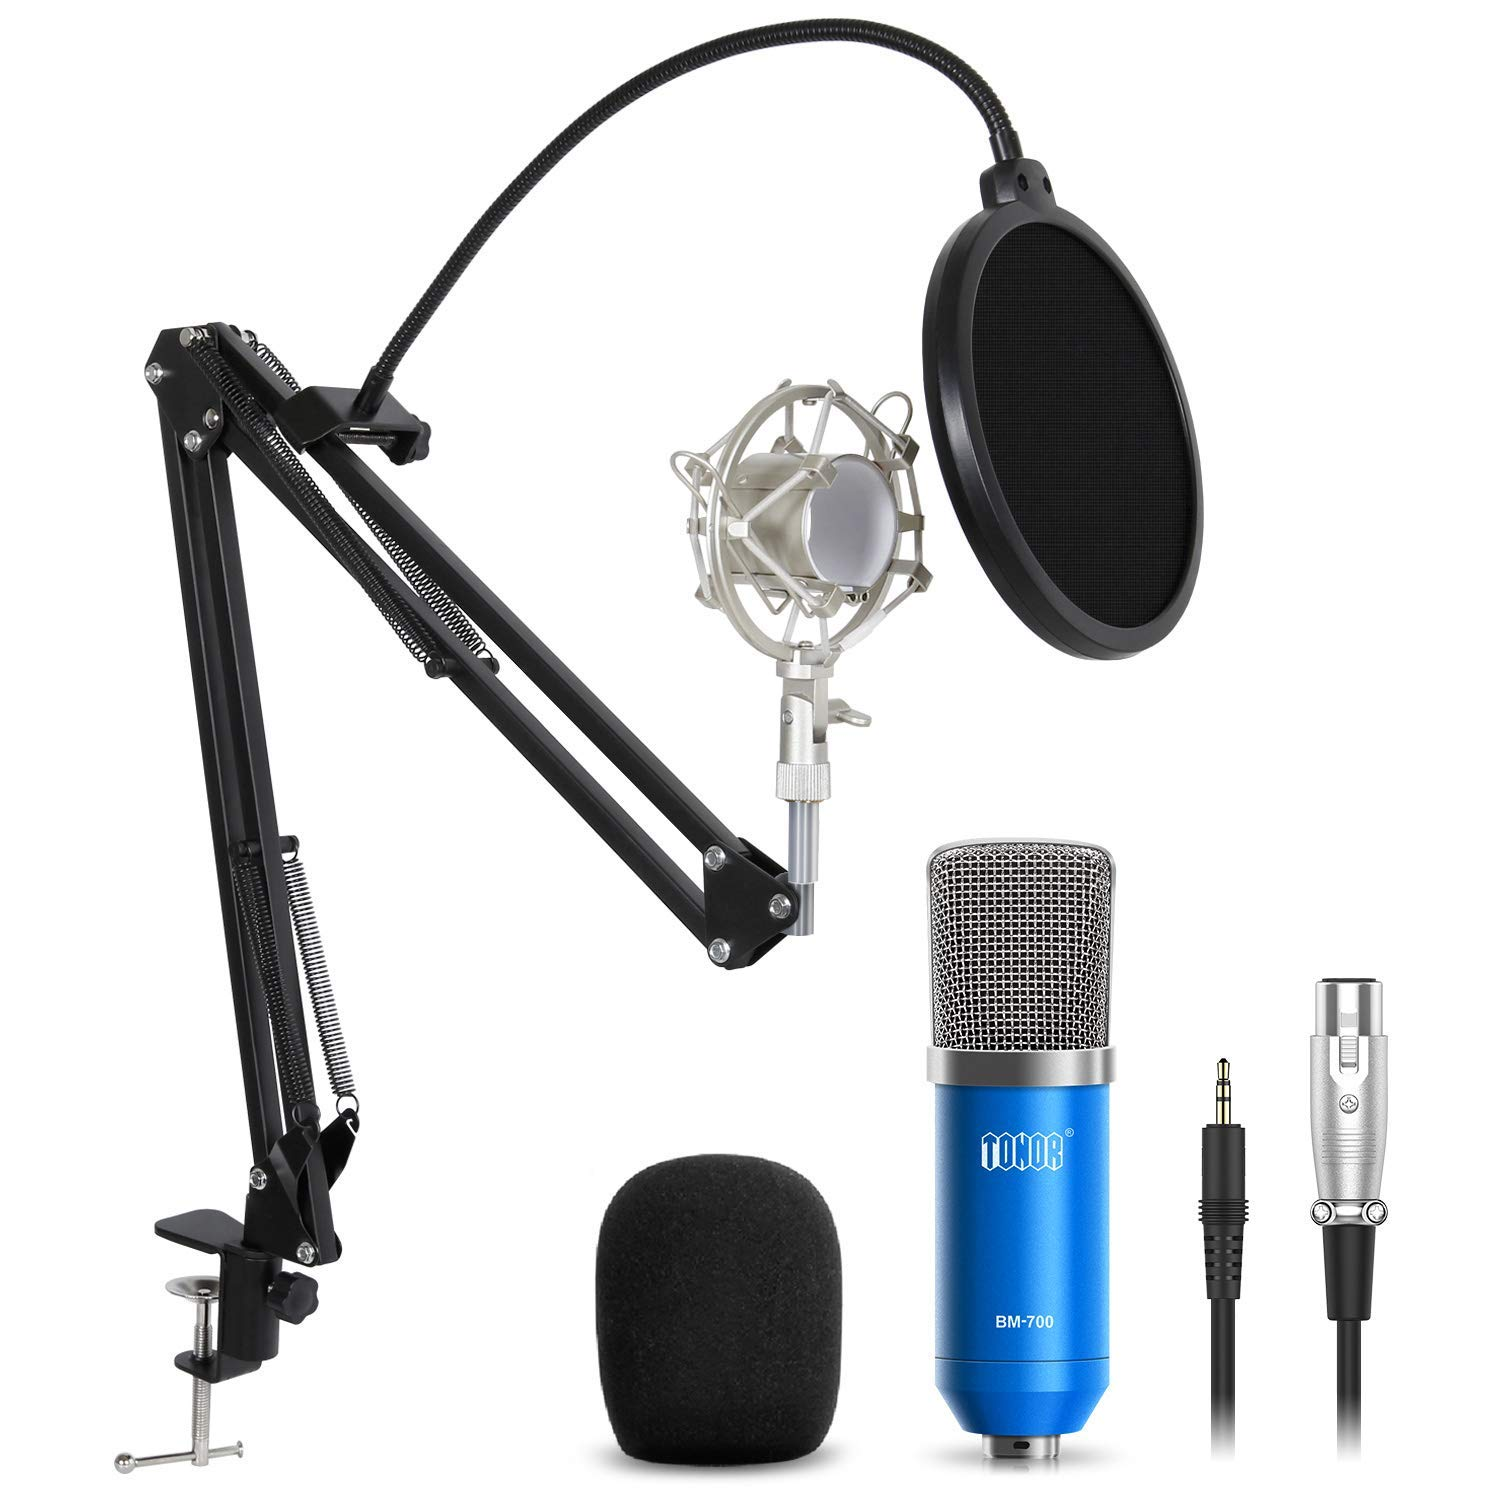 TONOR Professional Studio Condenser Microphone Computer PC Microphone Kit with 3.5mm XLR/Pop Filter/Scissor Arm Stand/Shock Mount for Professional Studio Recording Podcasting Broadcasting, Blue by TONOR